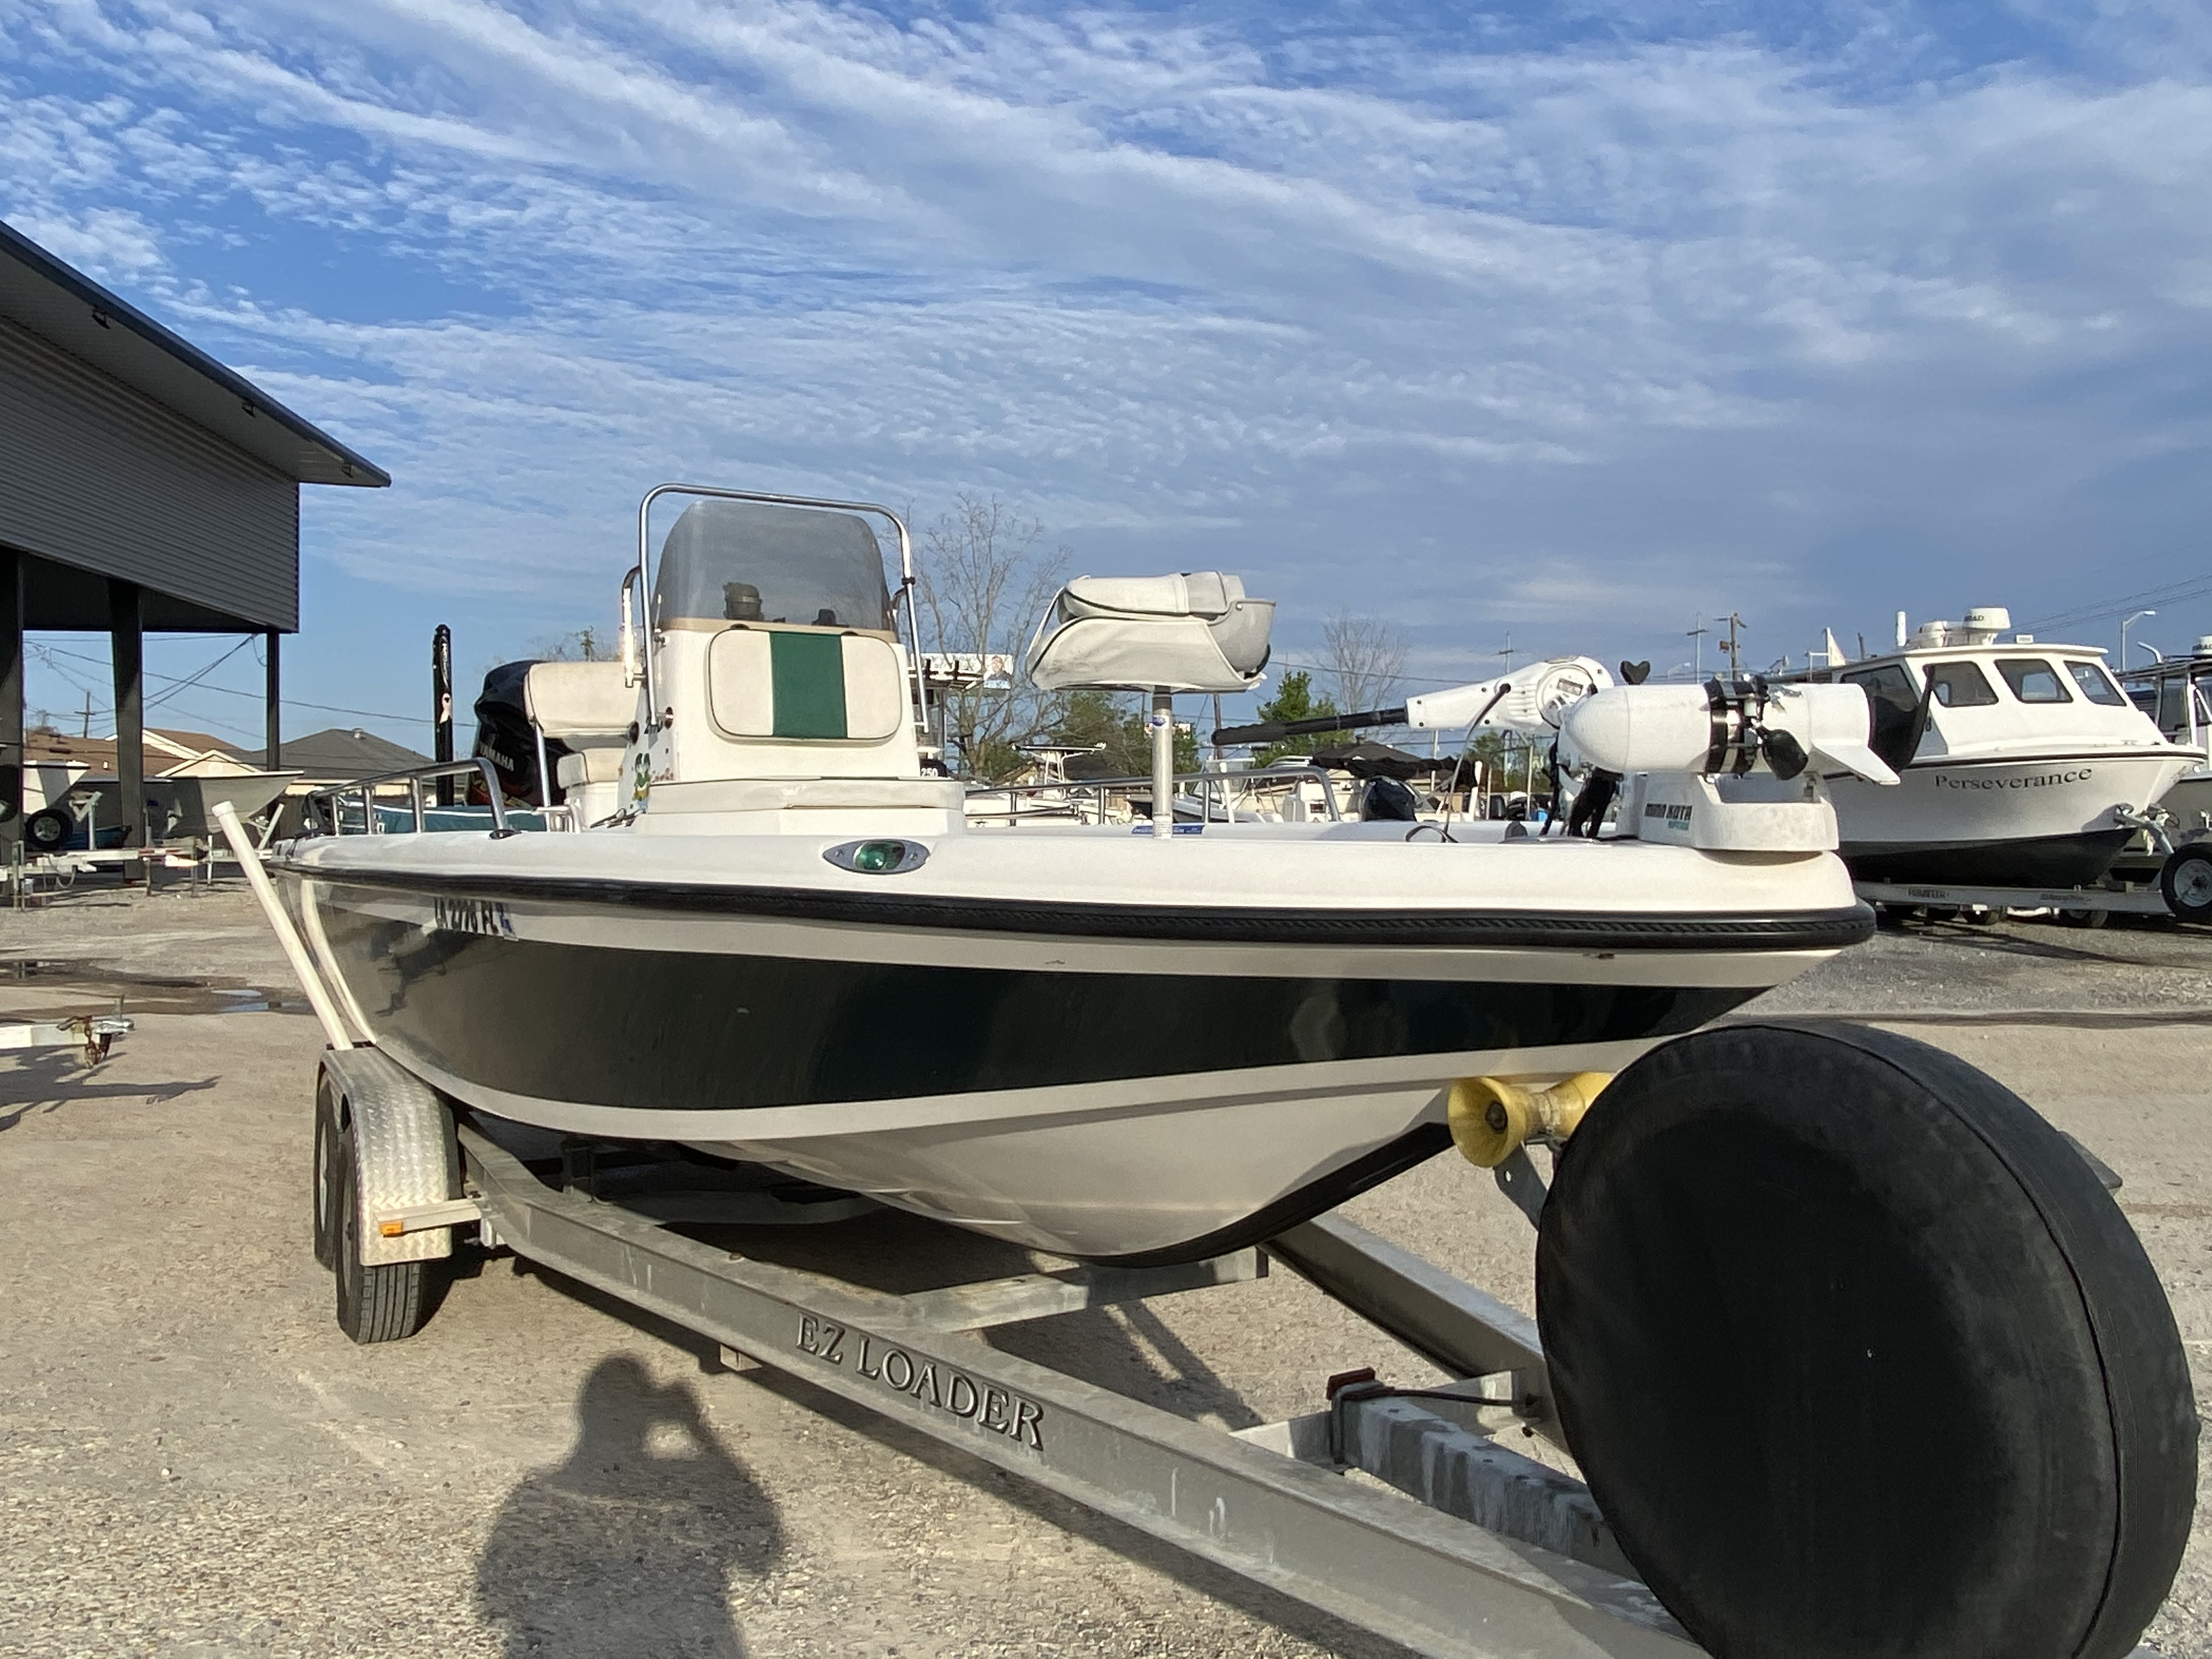 2005 ProGator boat for sale, model of the boat is 2110 CC & Image # 11 of 18